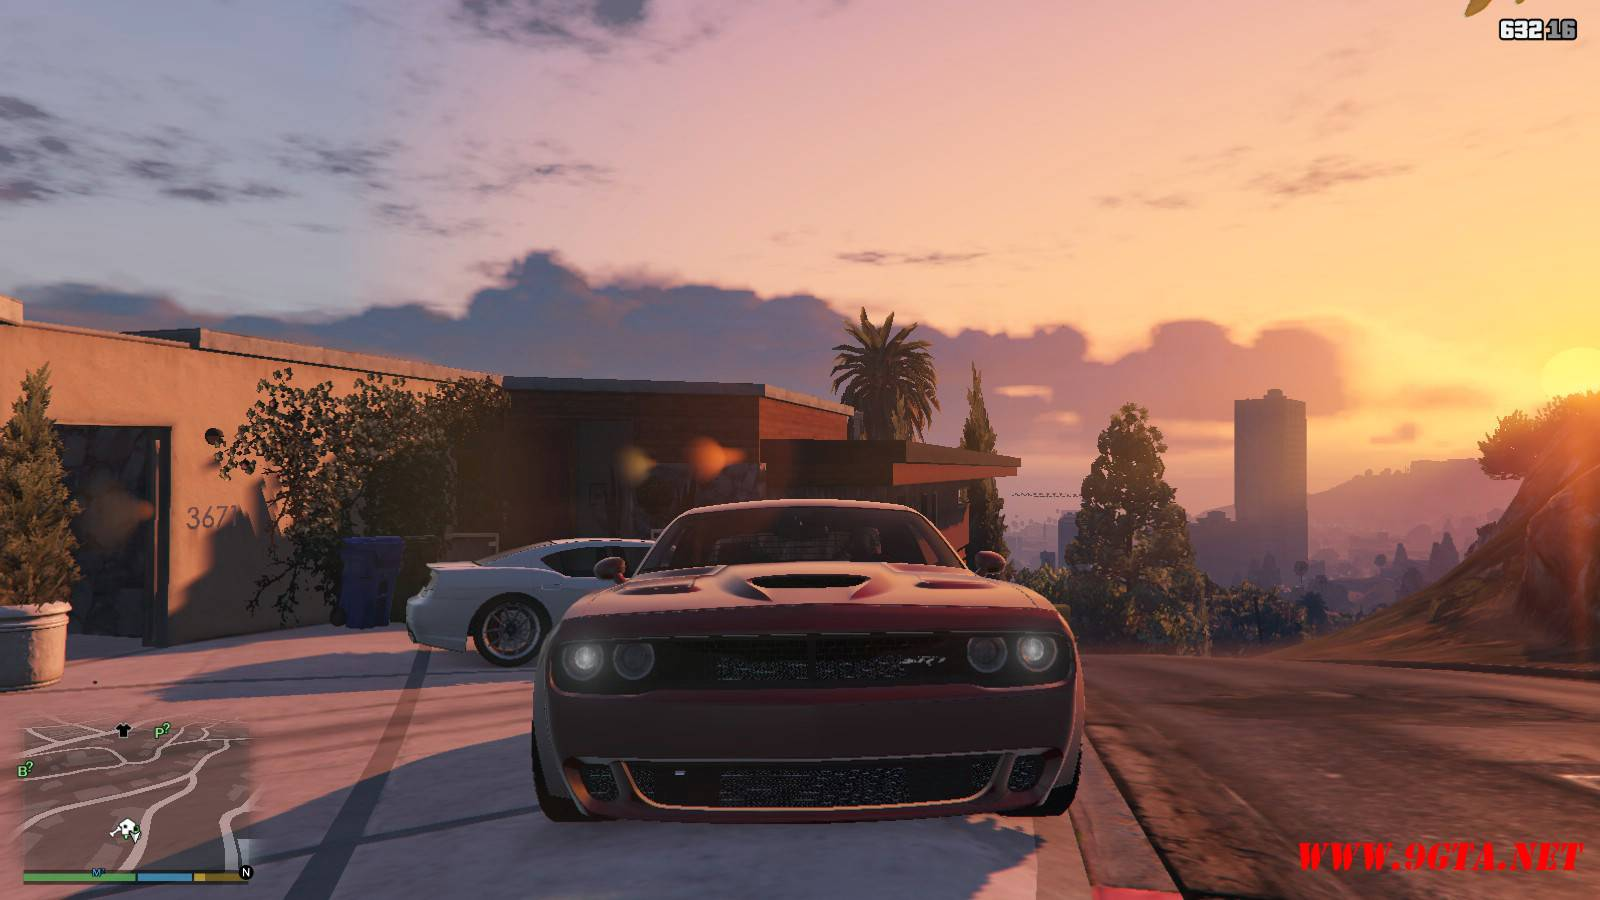 2018 Dodge Challenger SRT Demon v1.4 Mod For GTA5 (6)